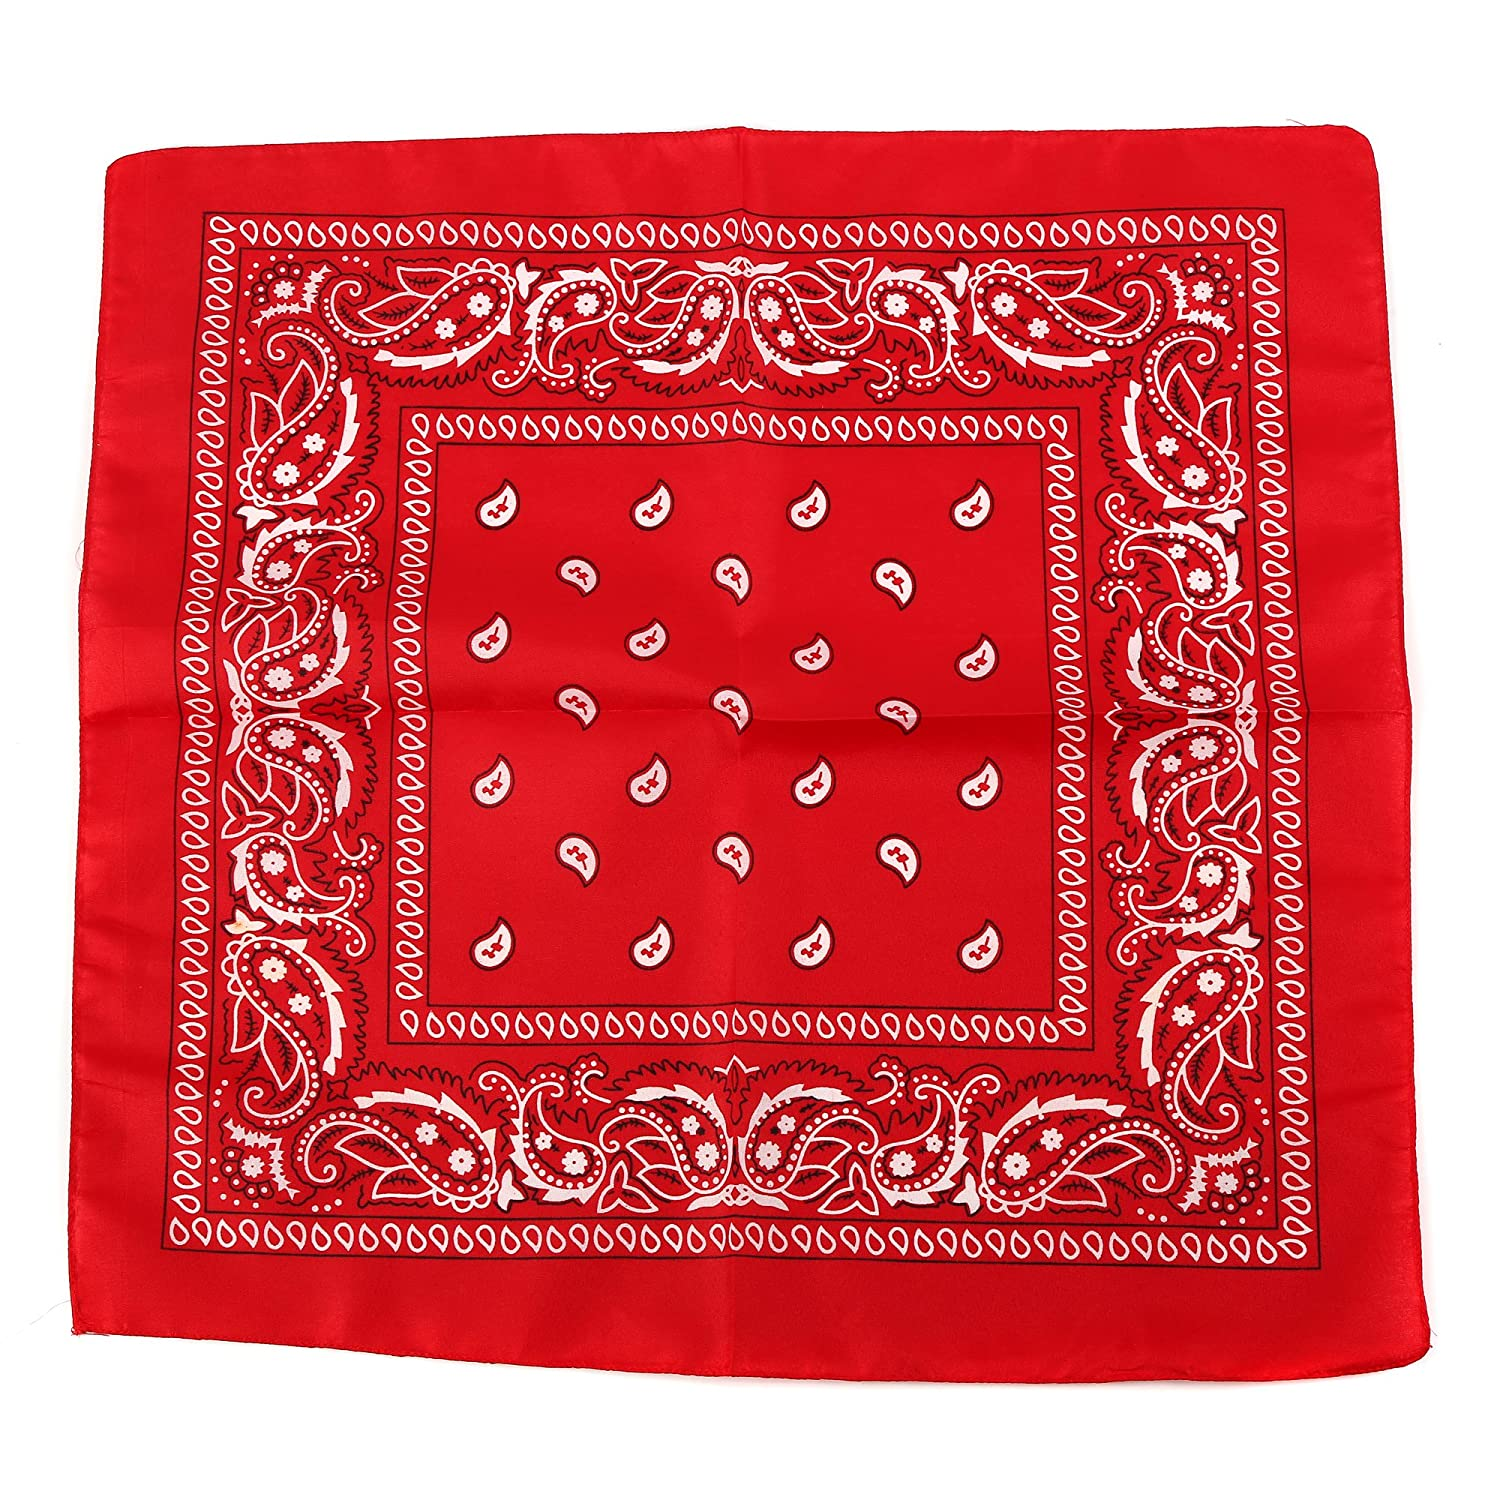 Red Fun Central 12 Pack Bandanas in Bulk for Men Kids /& Dogs Women Cowboy Party Favors Supplies